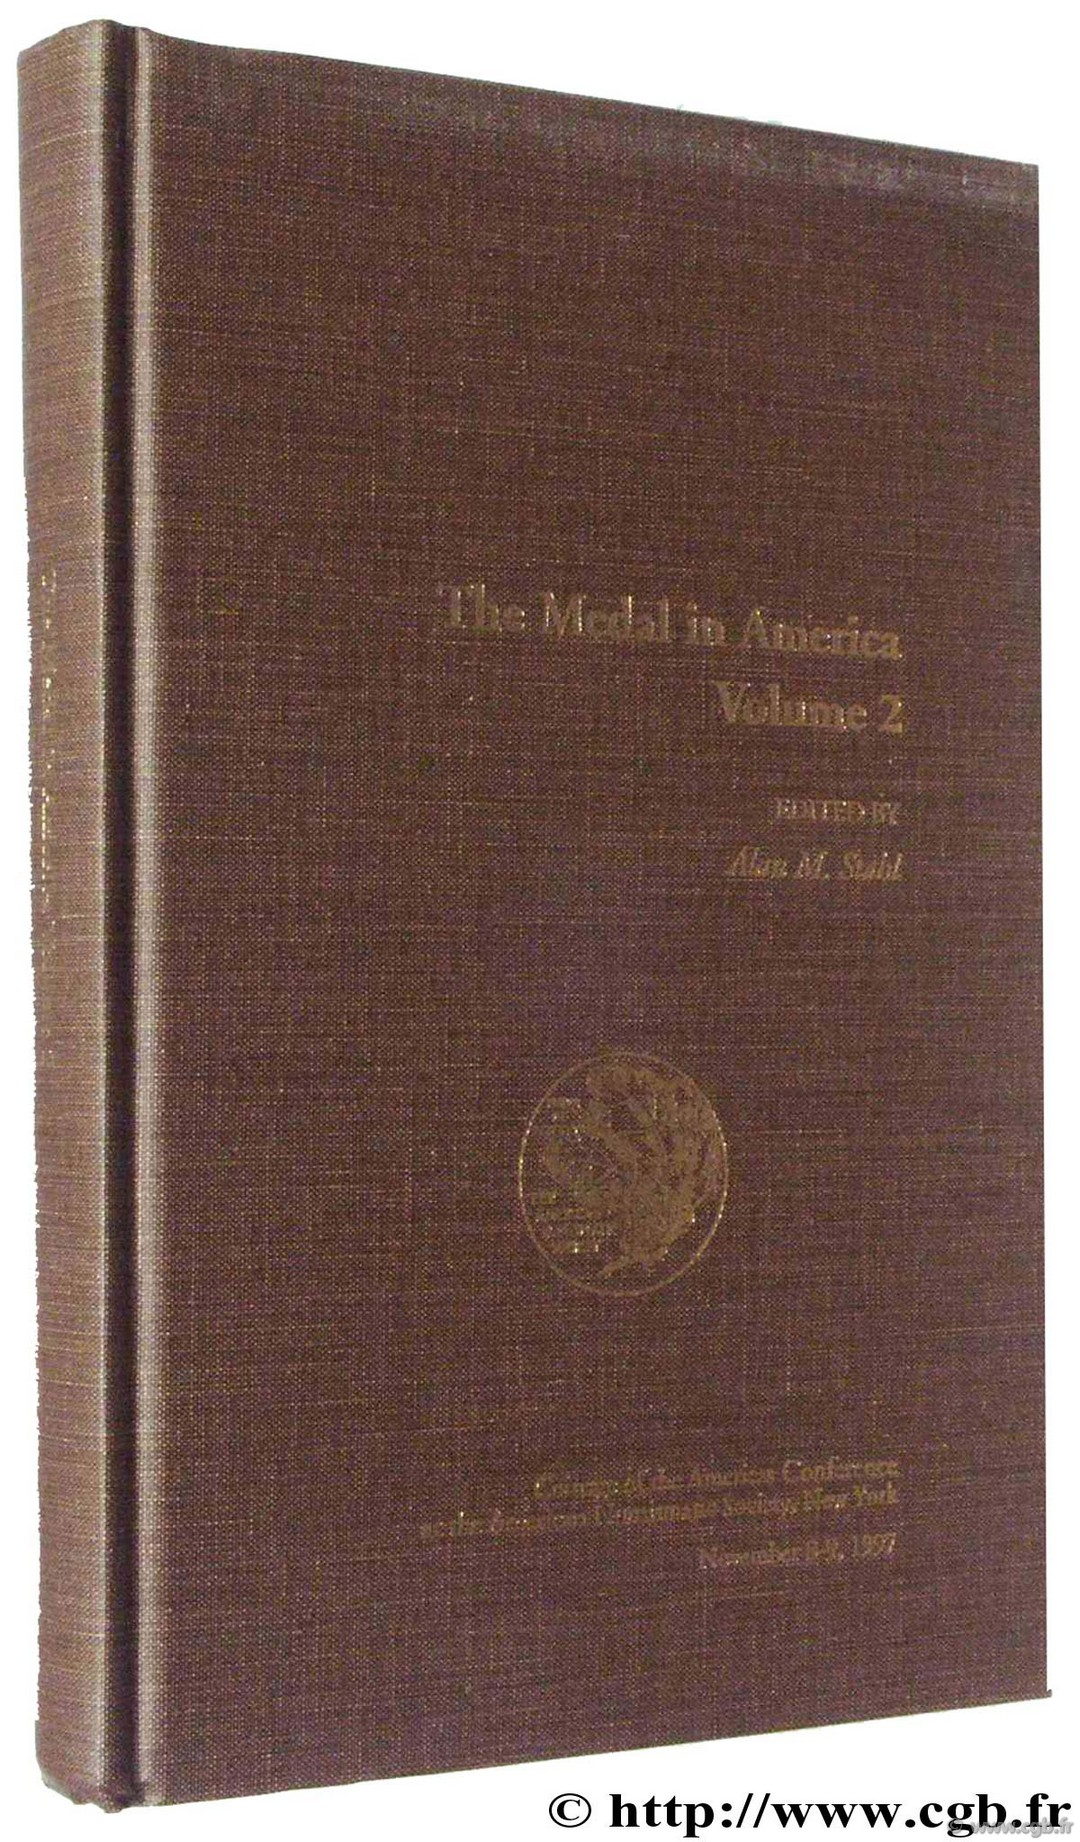 The Medal in America volume 2, Coinage of the Americas Conférence at the American Numismatic Society, New York November 8-9, 1997